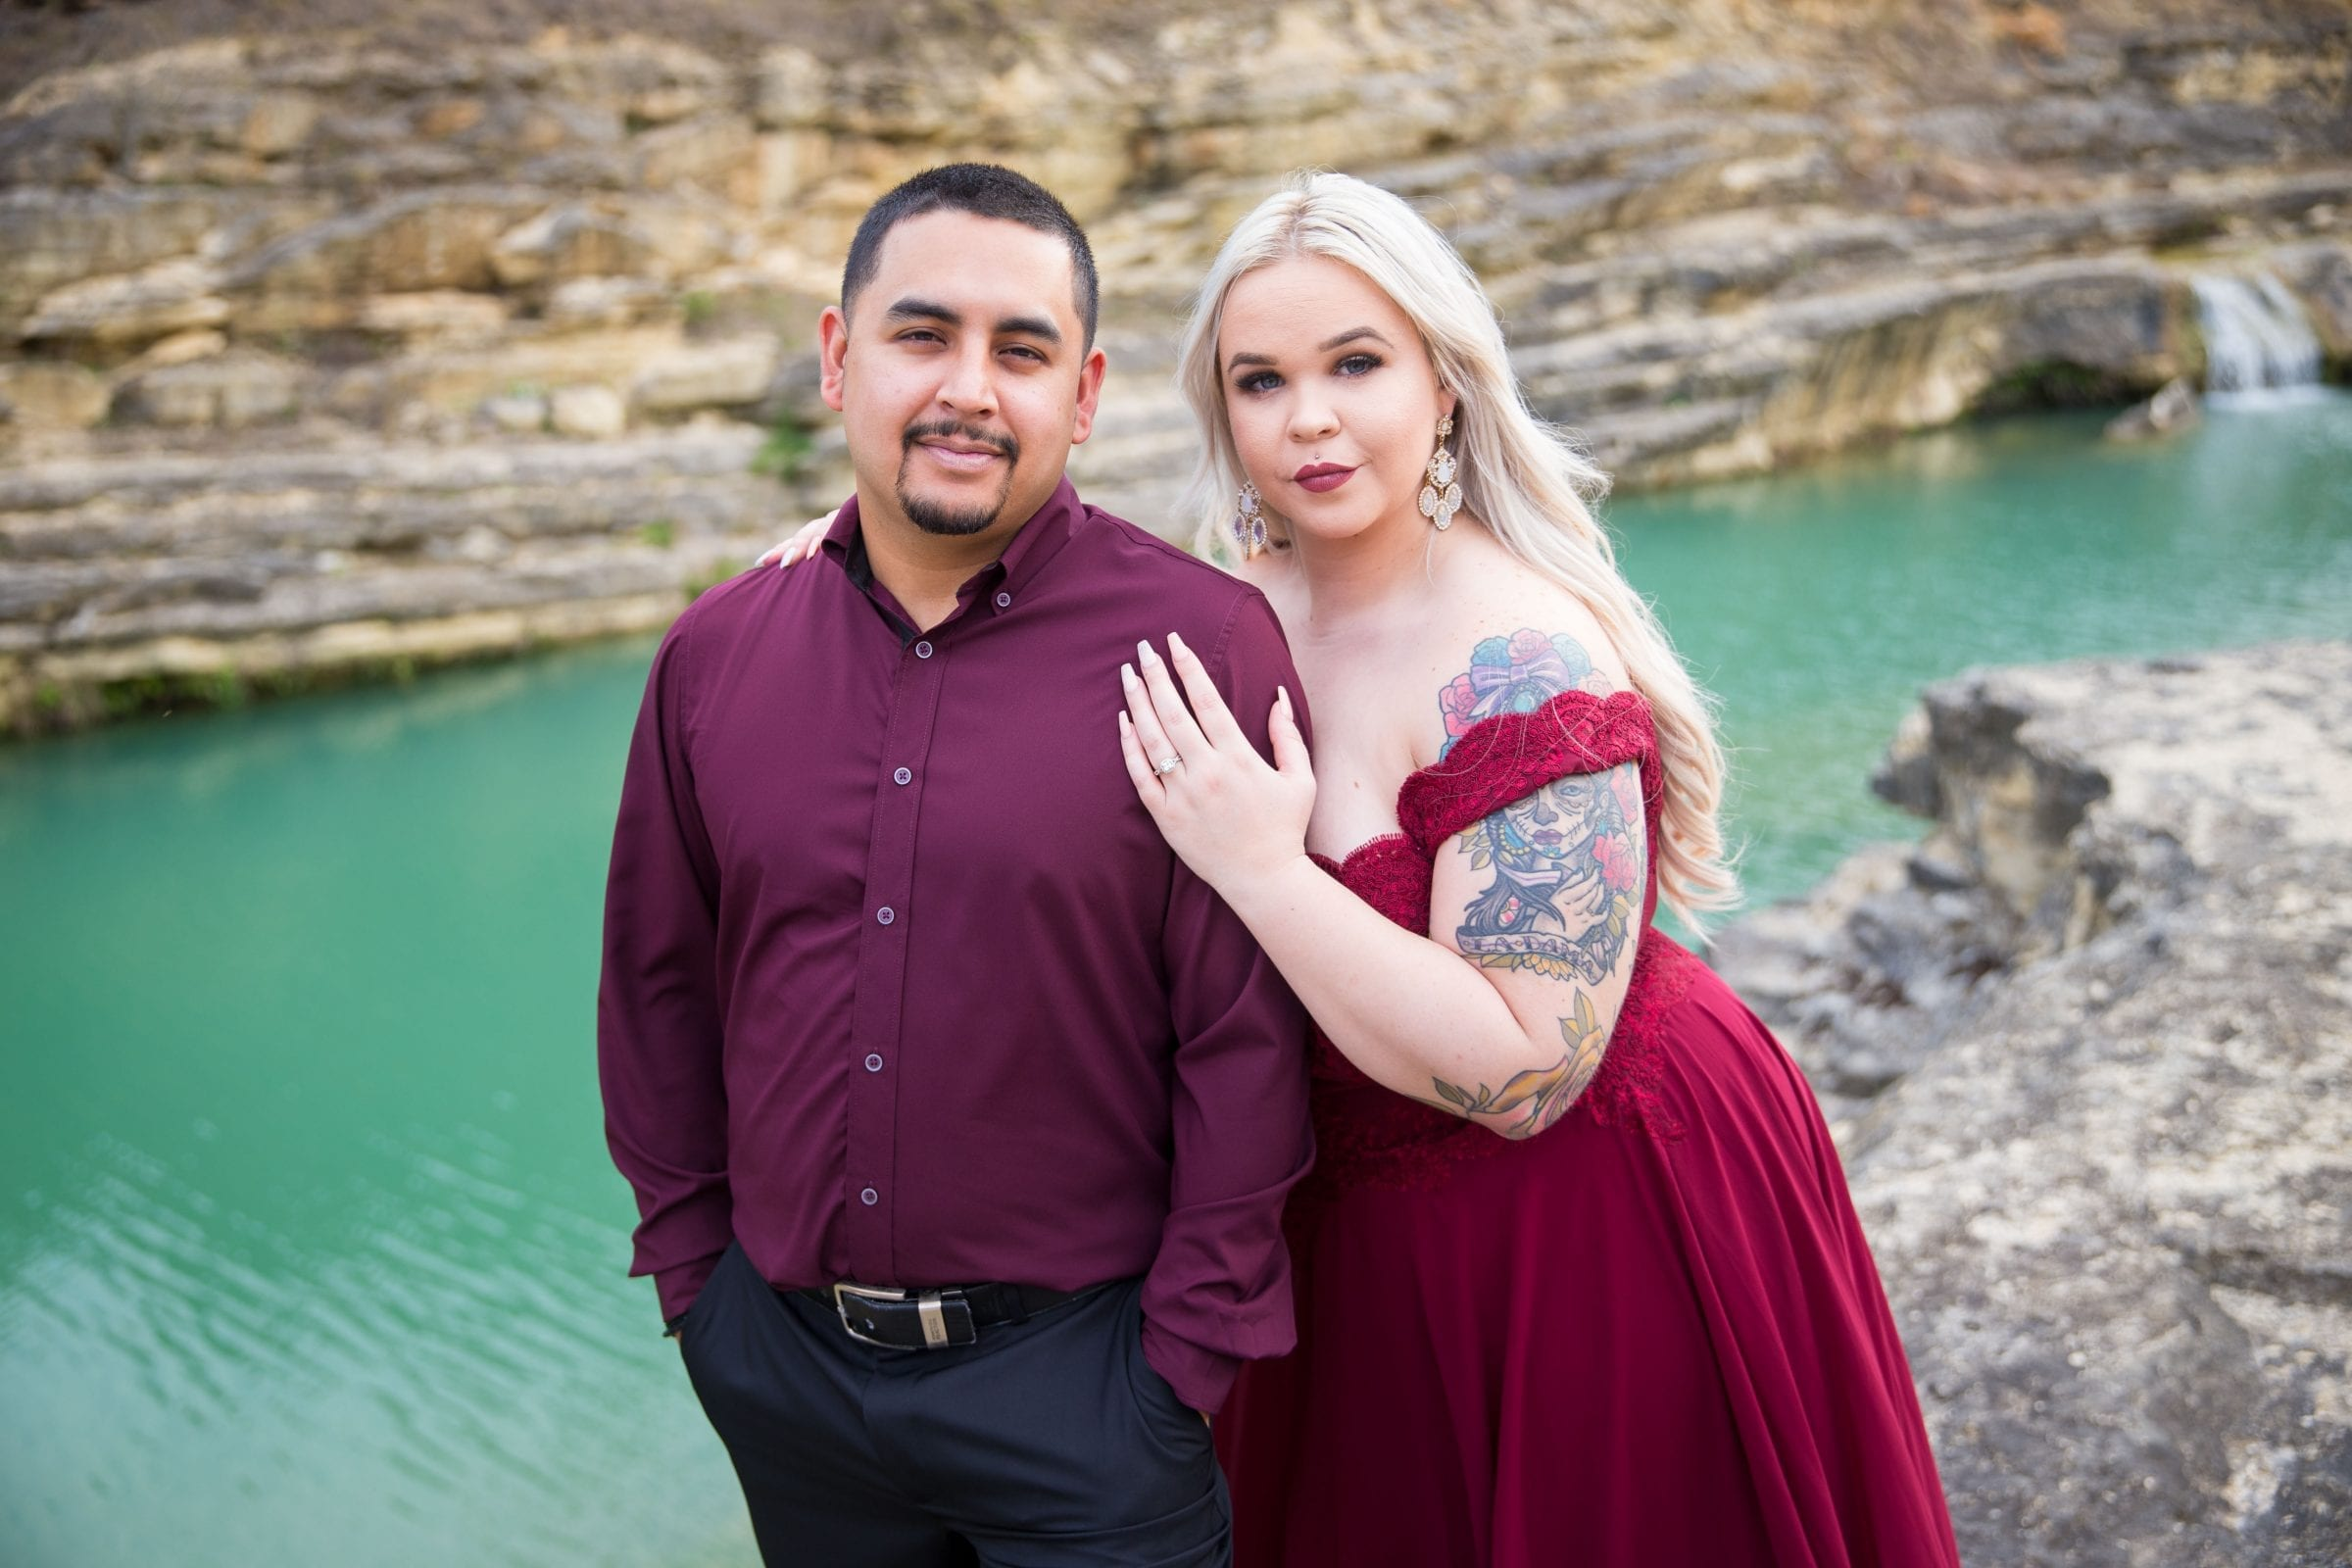 Katie and Gabe engagement session Canyon Lake dam gorge on rocks portrait